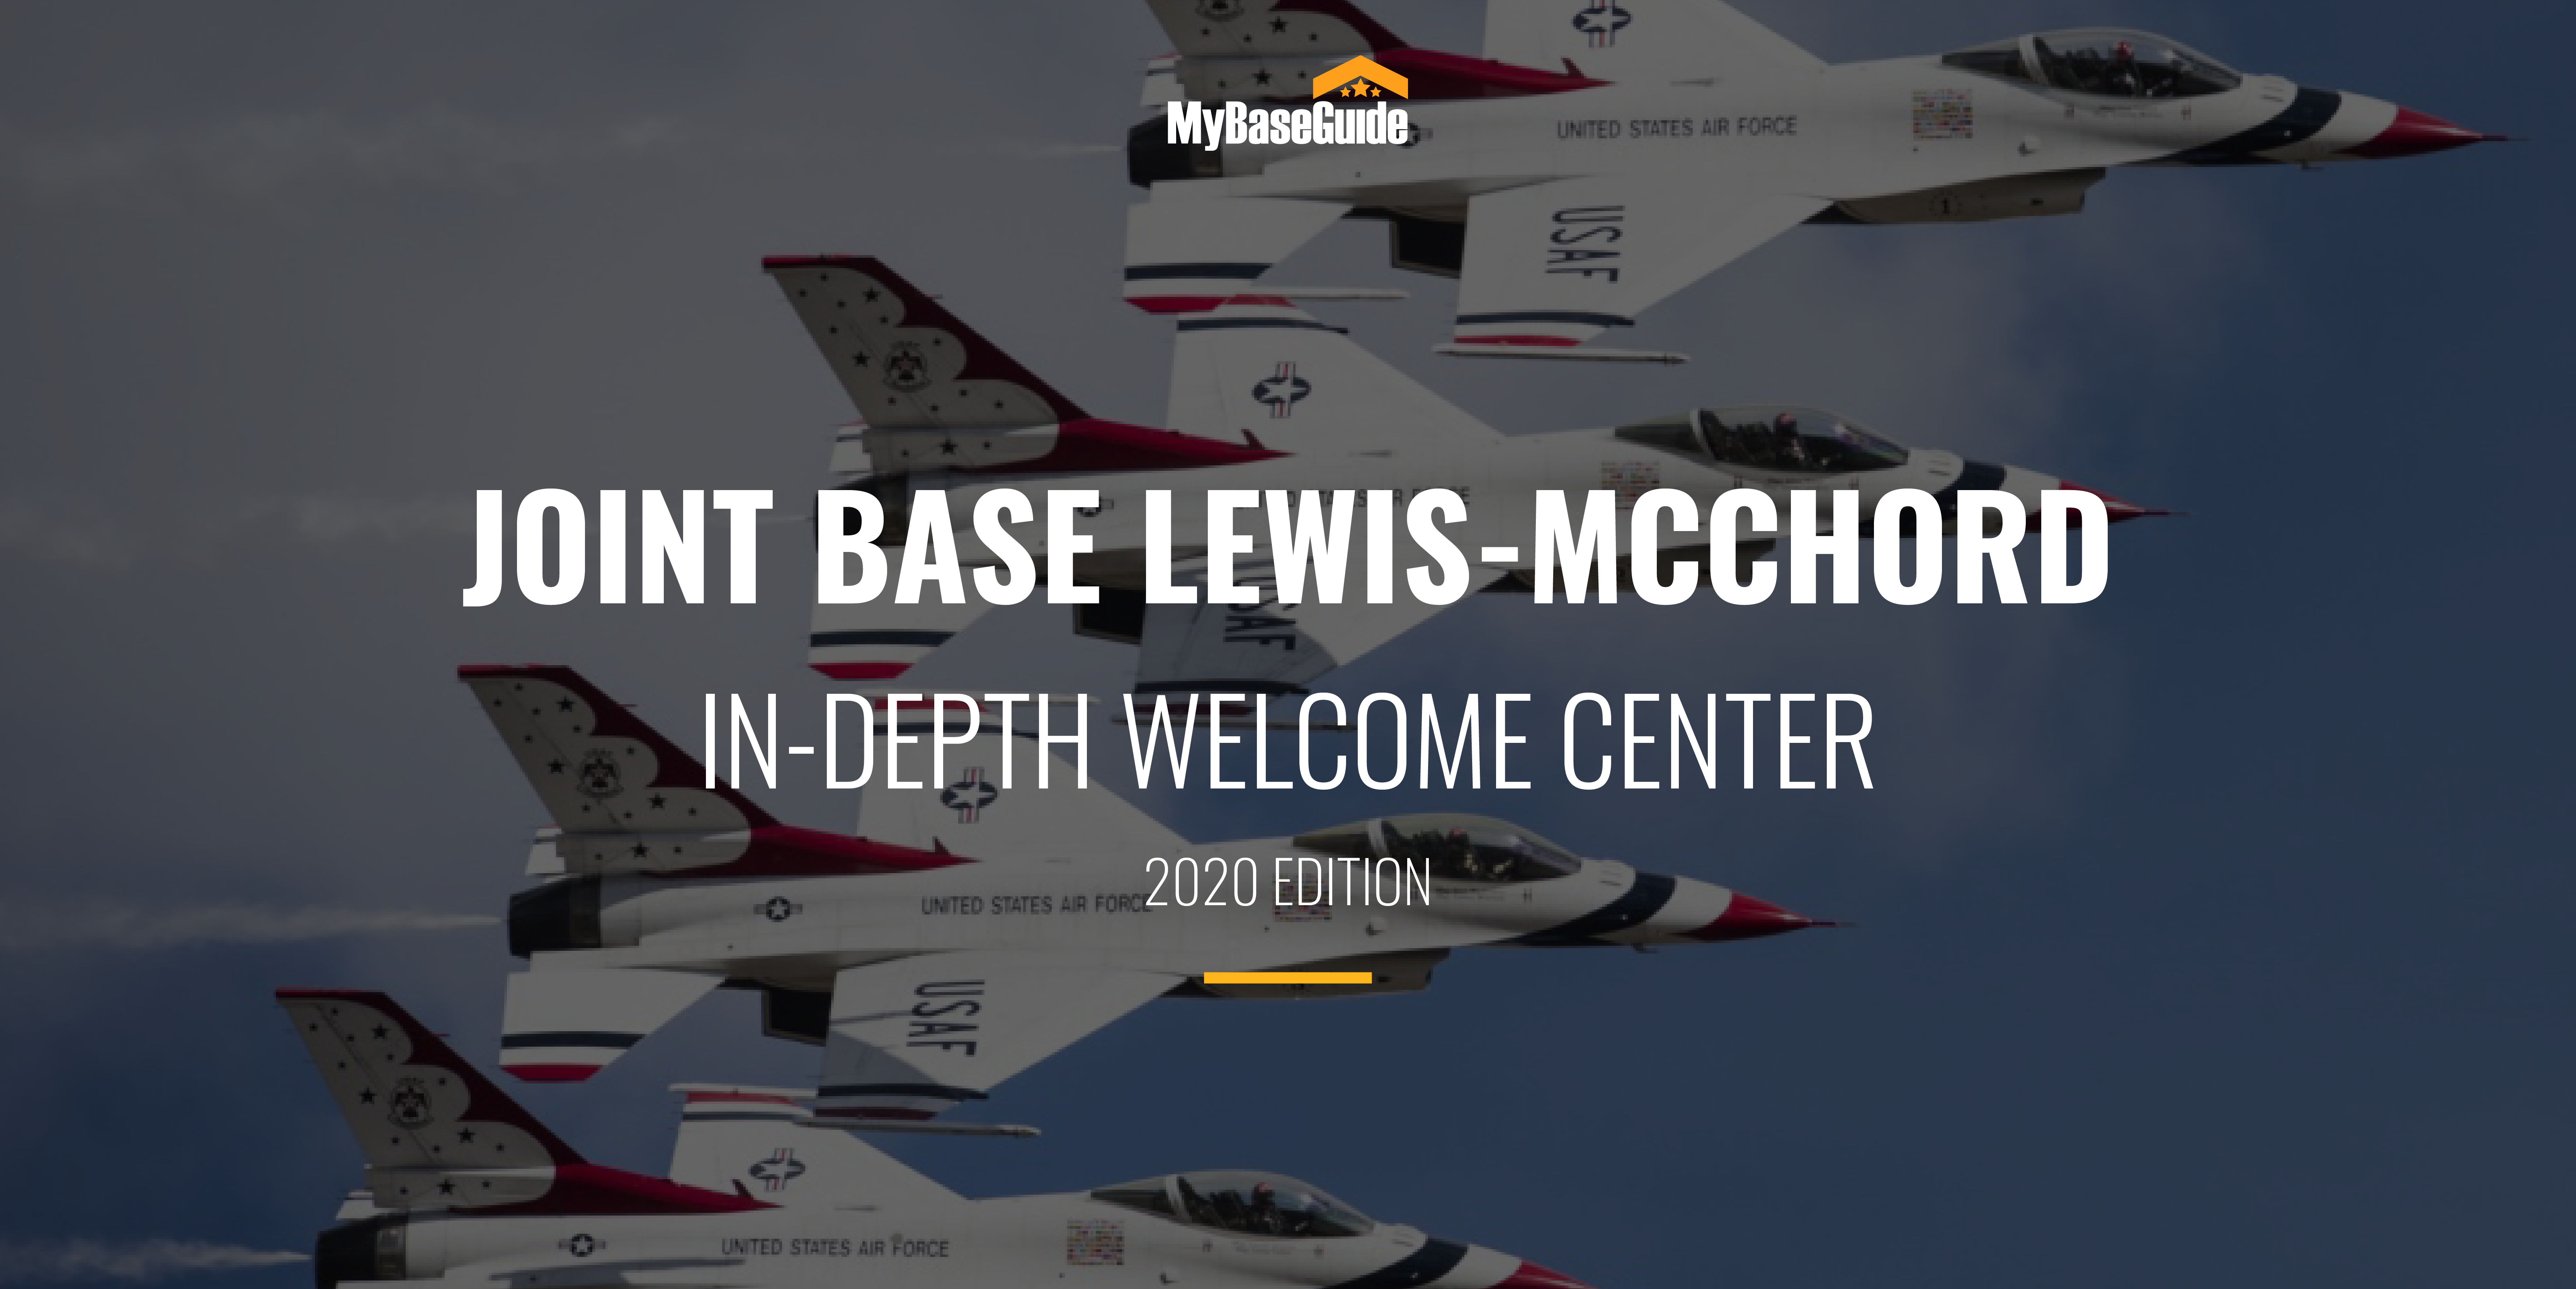 Joint Base Lewis-McChord: In-Depth Welcome Center